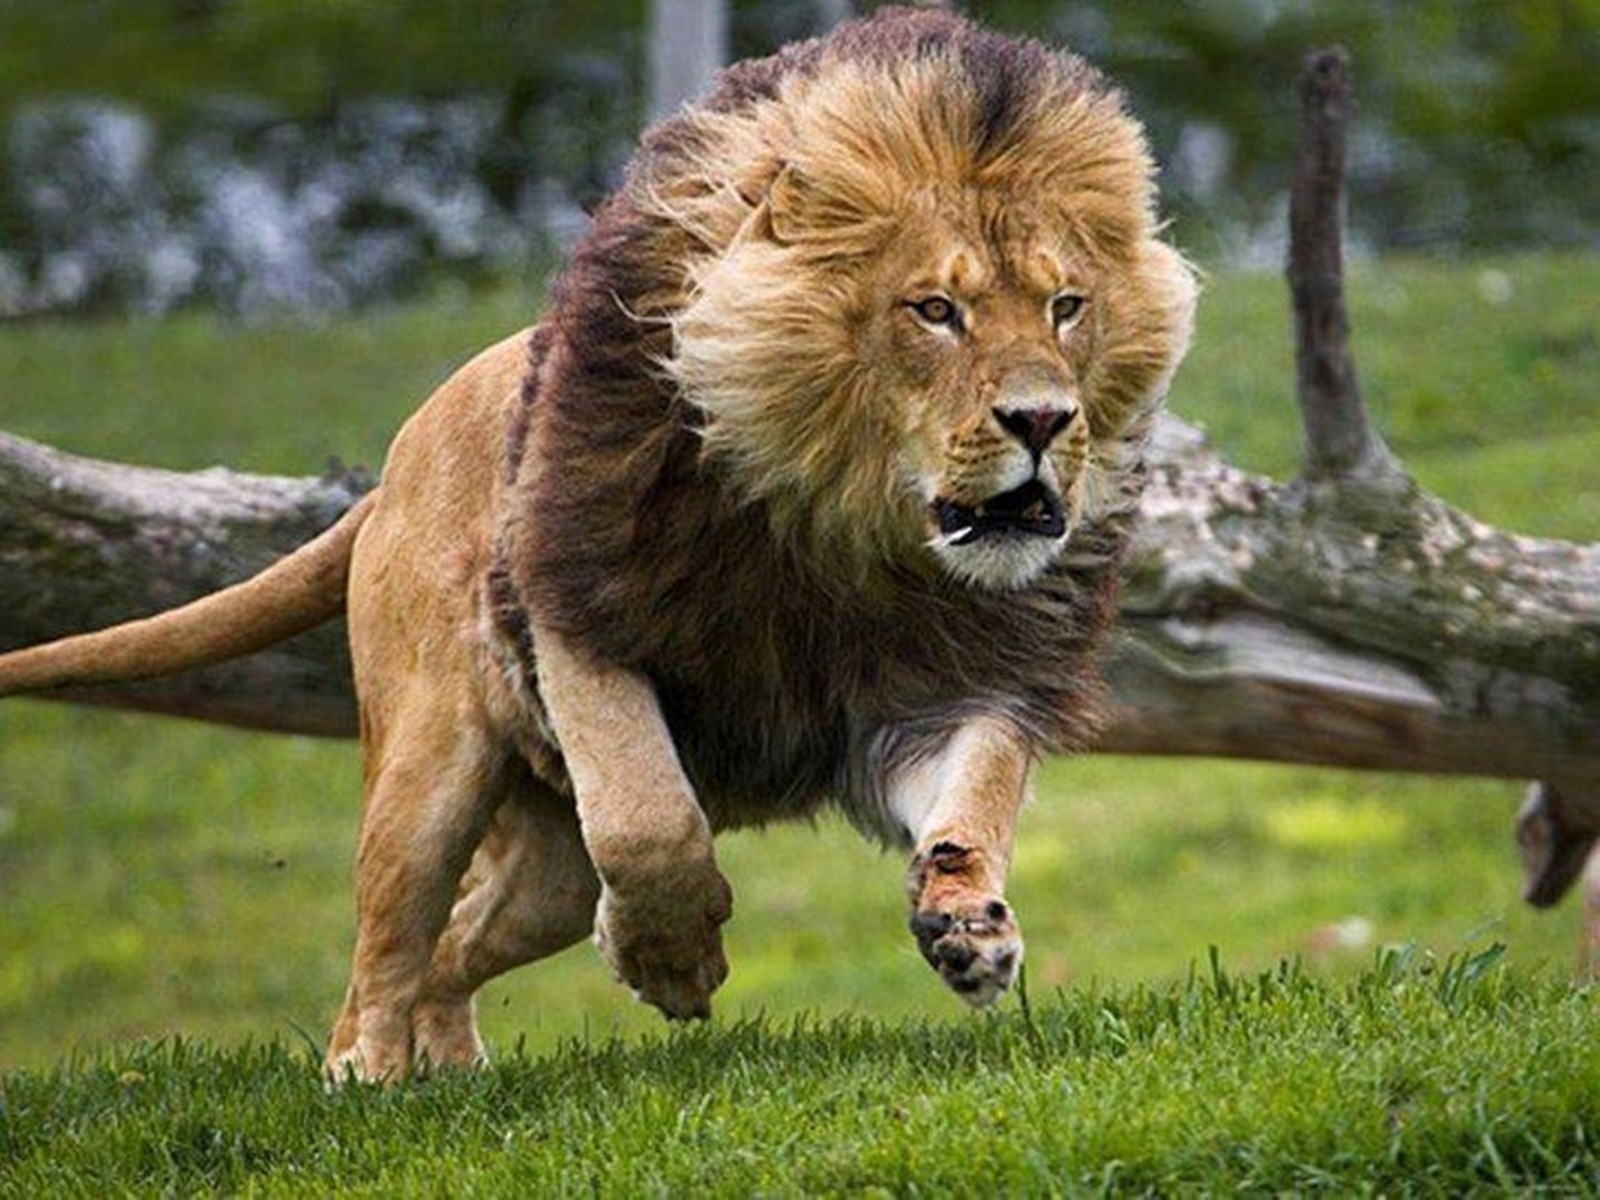 Lion Hd Wallpapers Wallpapers Animal Hq Lion Hd Wallpapers Pictures 4k Wallpapers 2019